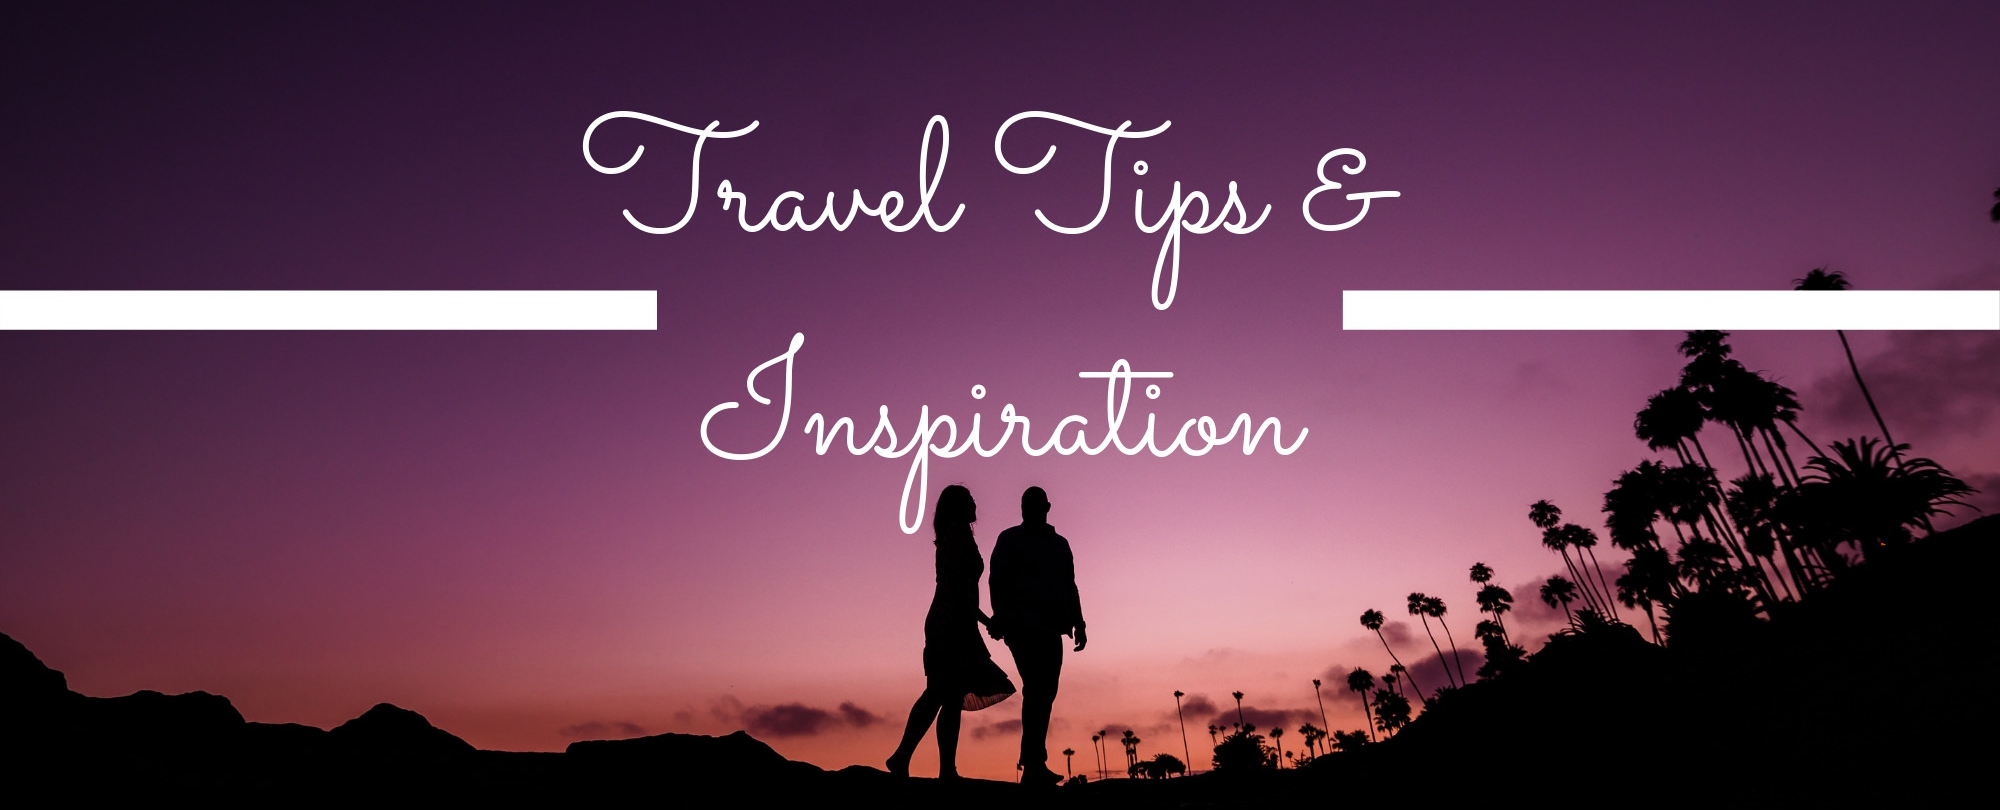 Travel Tips & Inspiration - Authentic Traveling